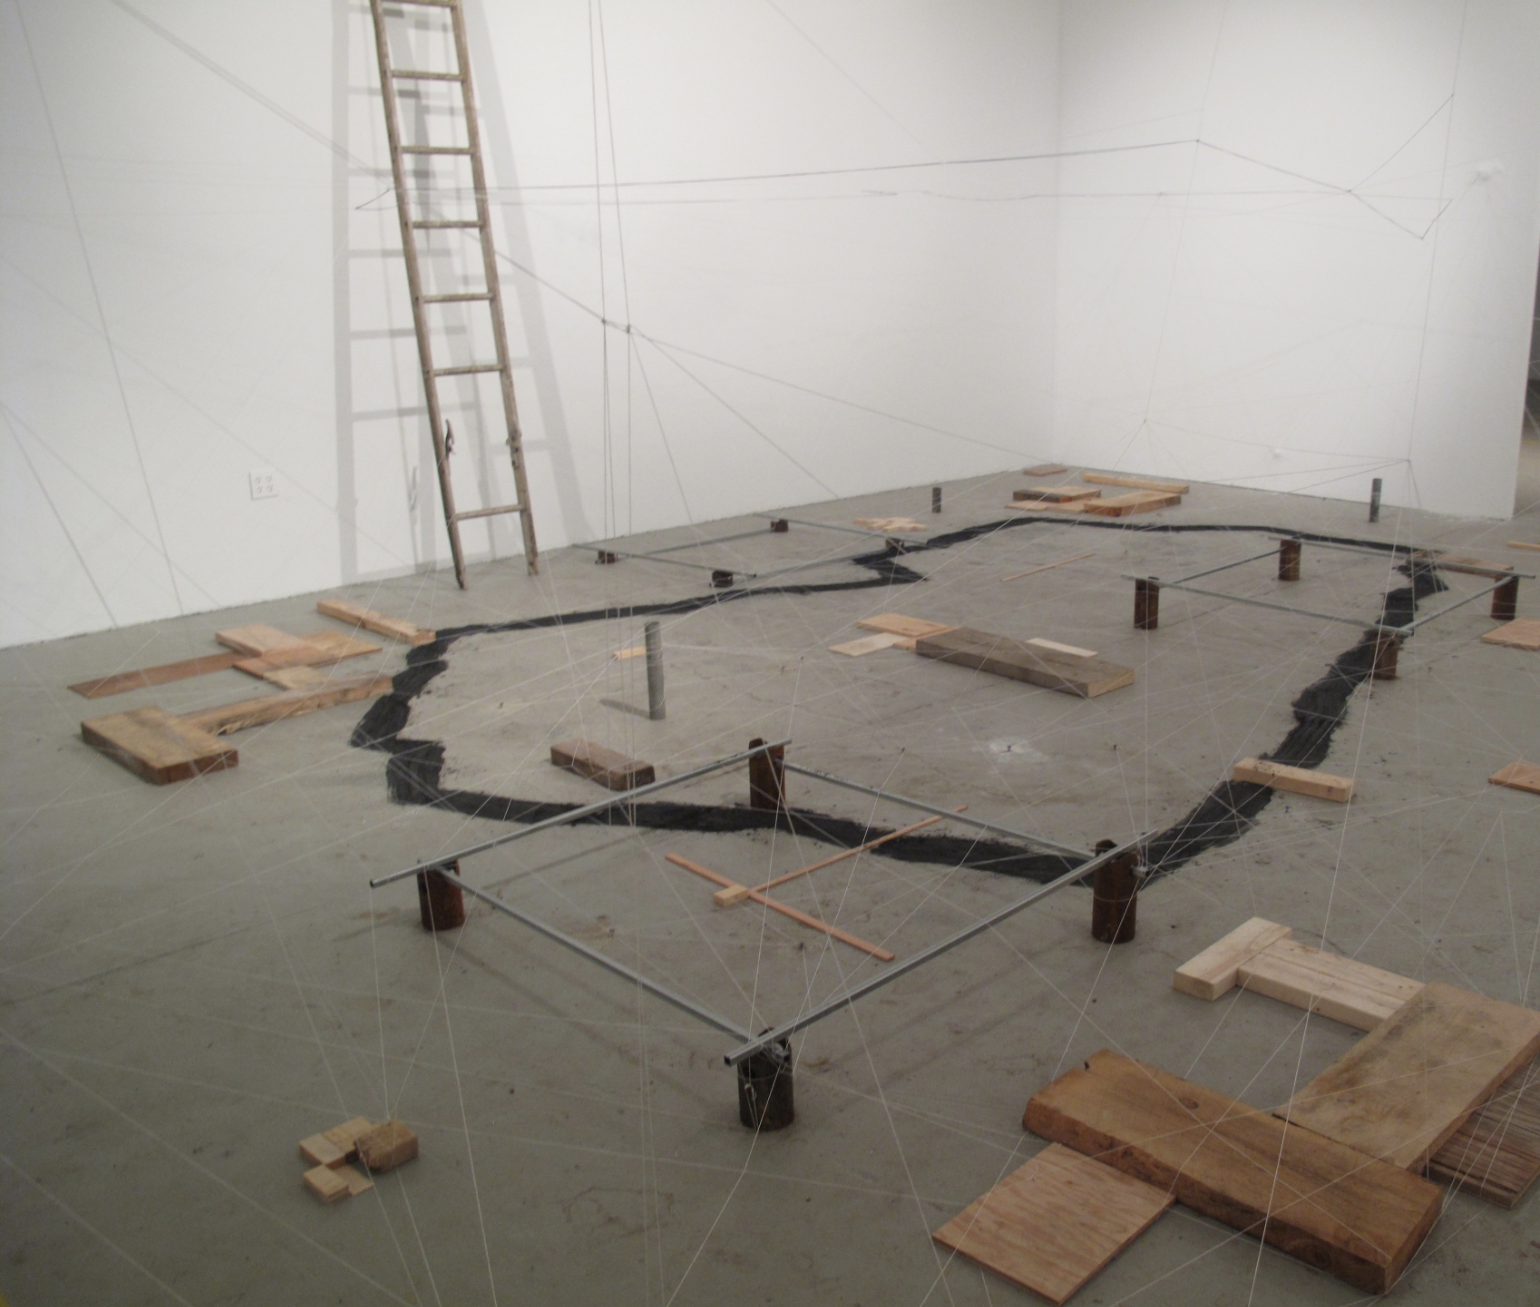 Configurations of Constructions to Make a Whole